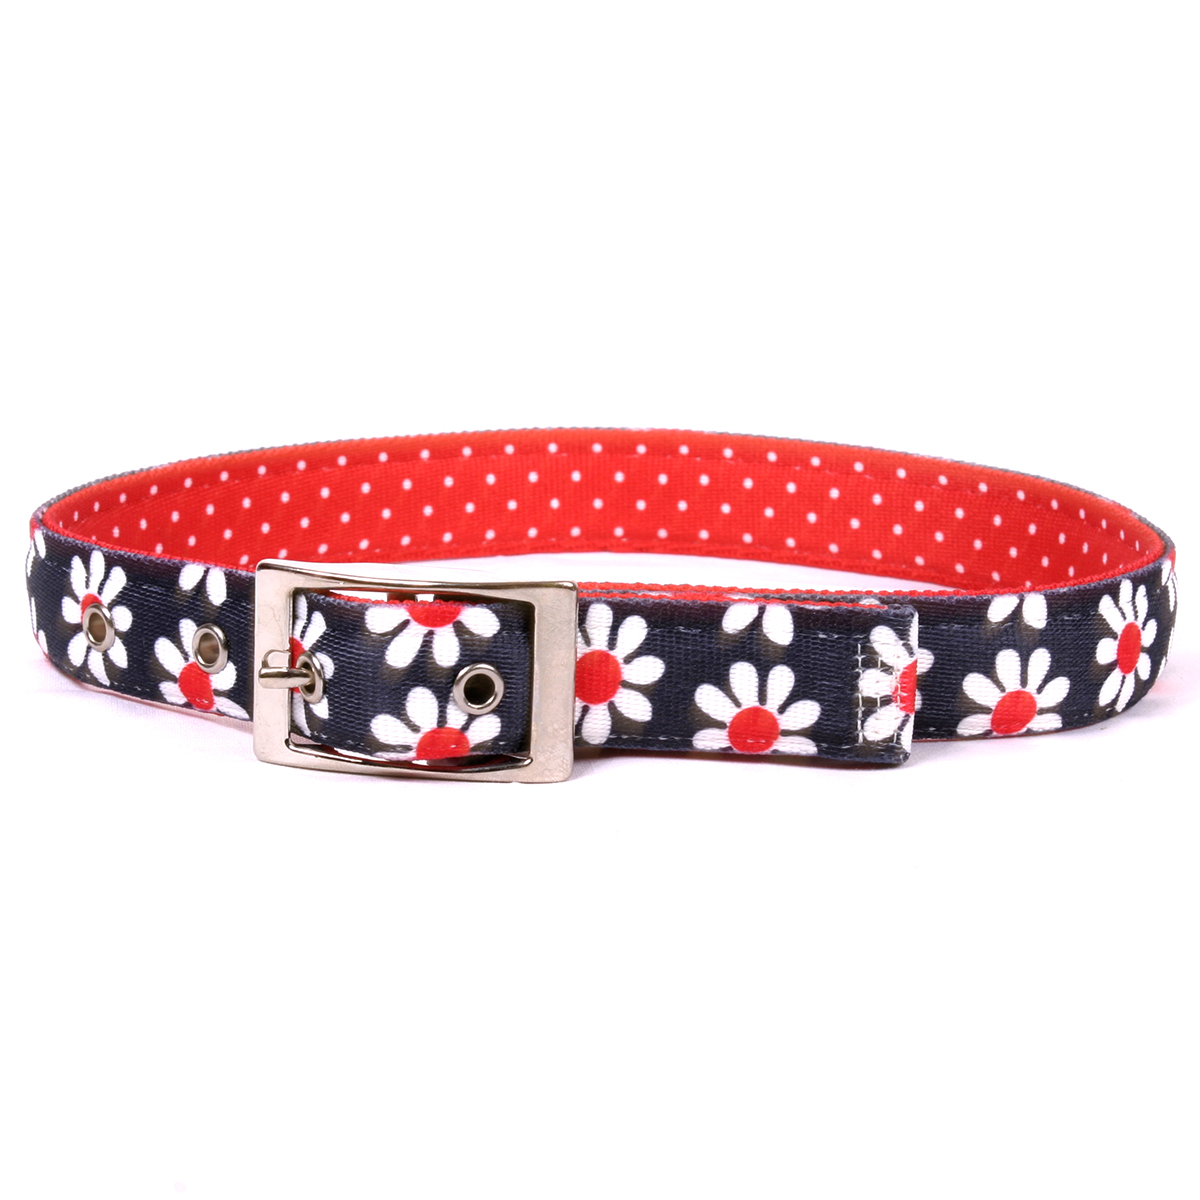 Black Daisy Uptown Collar